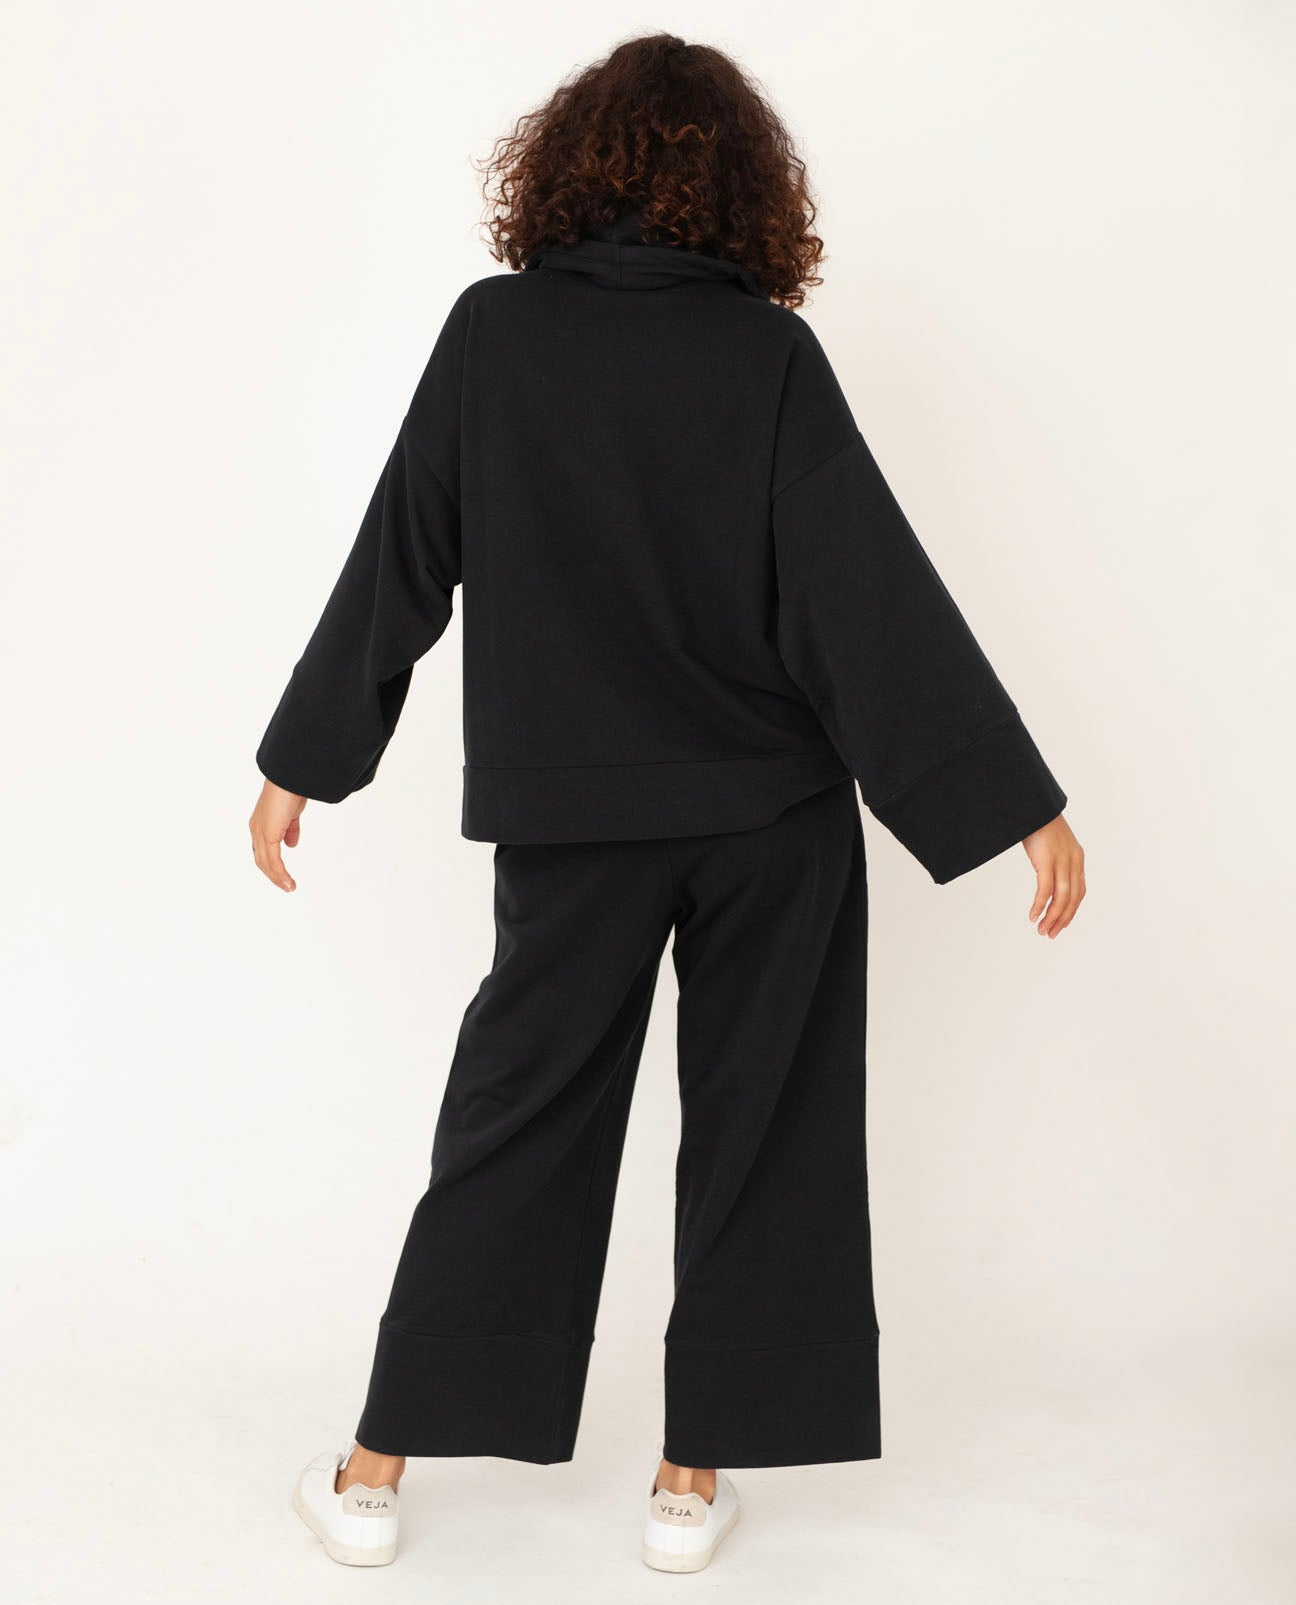 APHRA Organic Cotton Trousers In Black